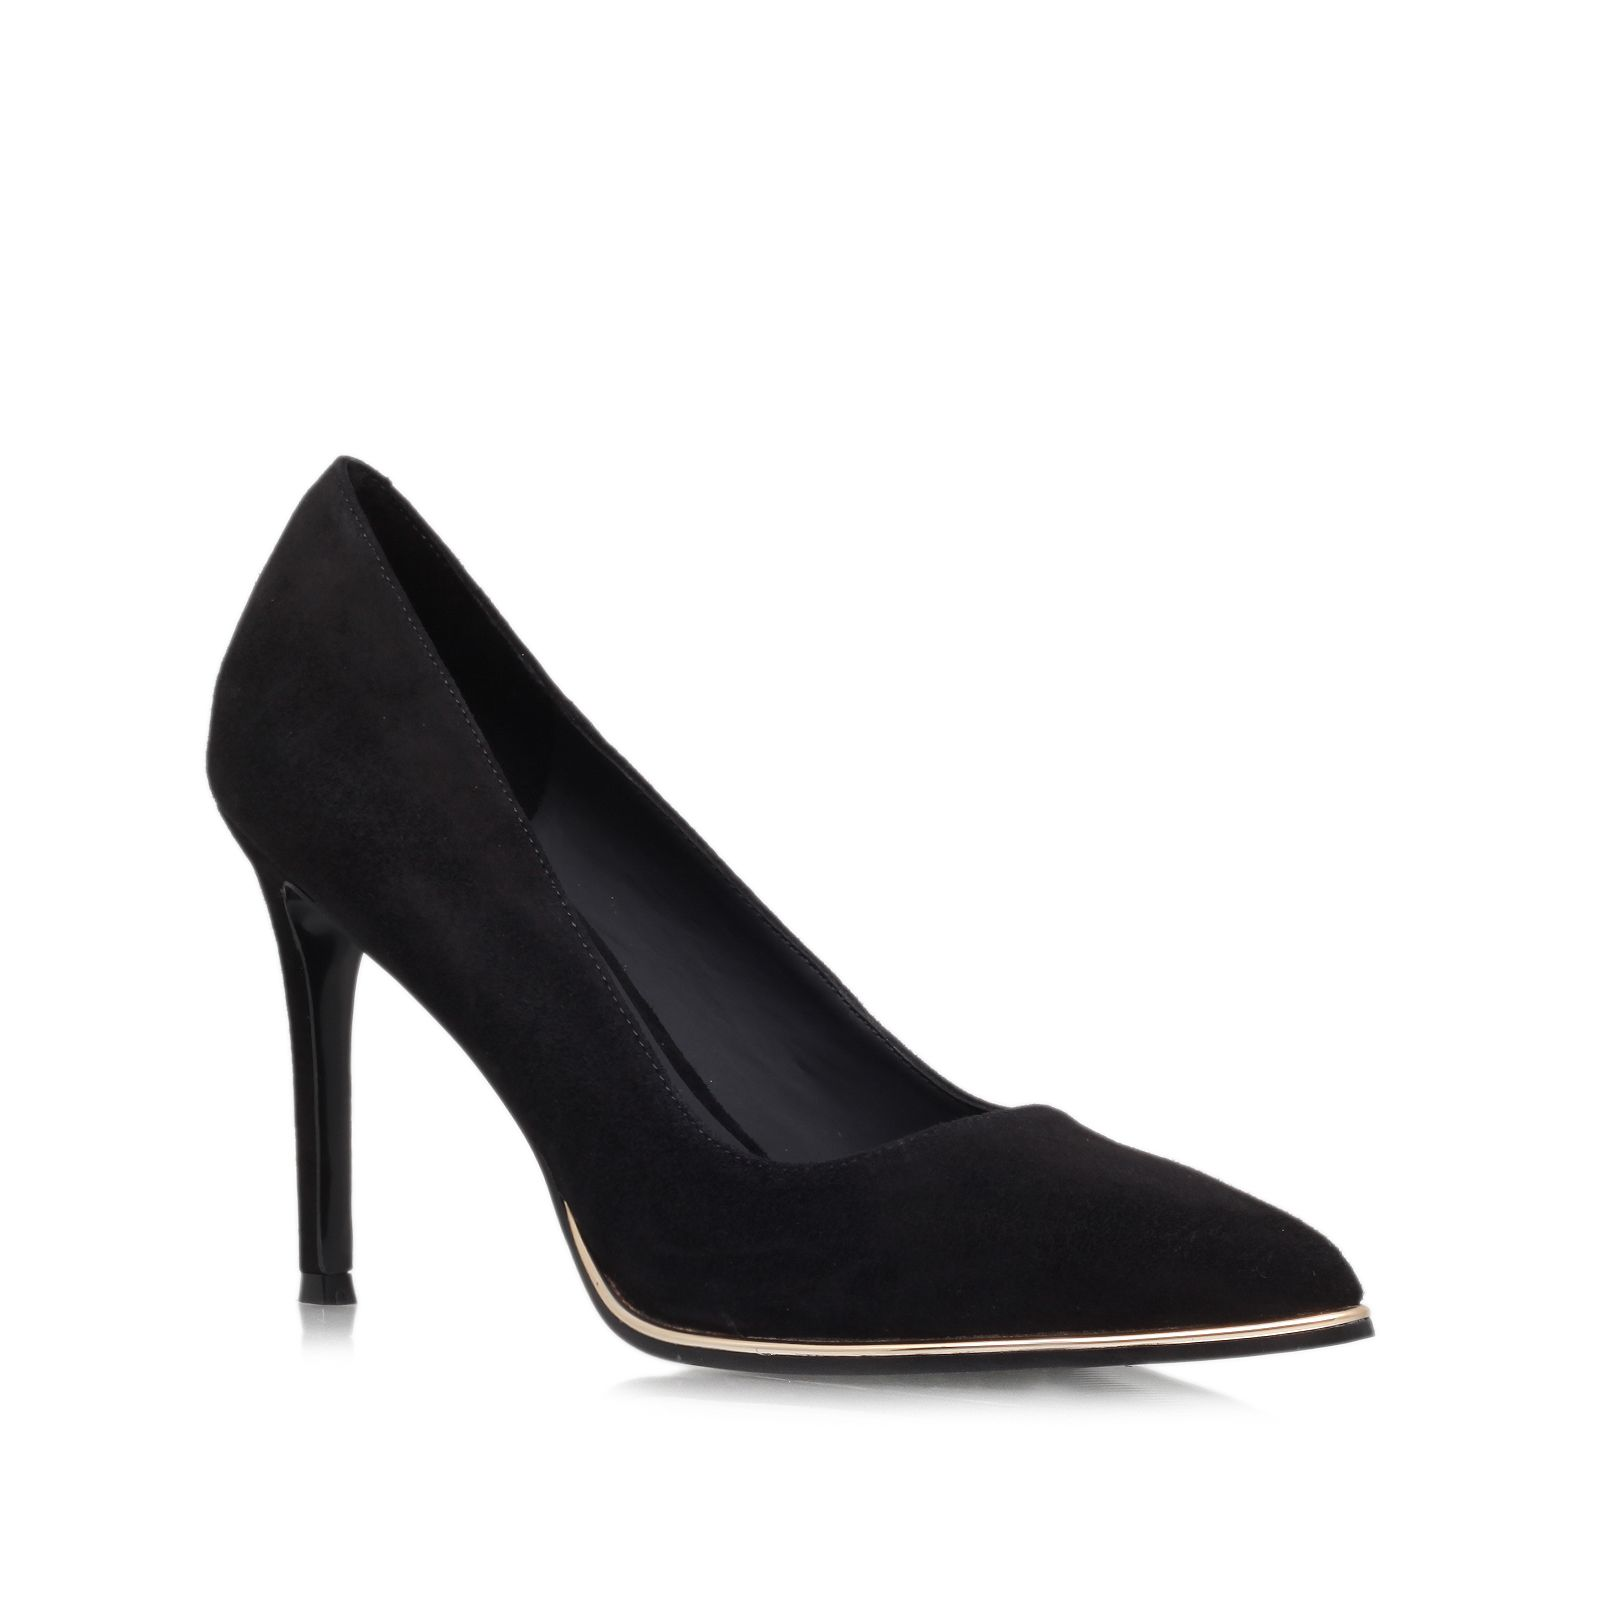 KG Beauty High Heeled Pointed Toe Courts, Black